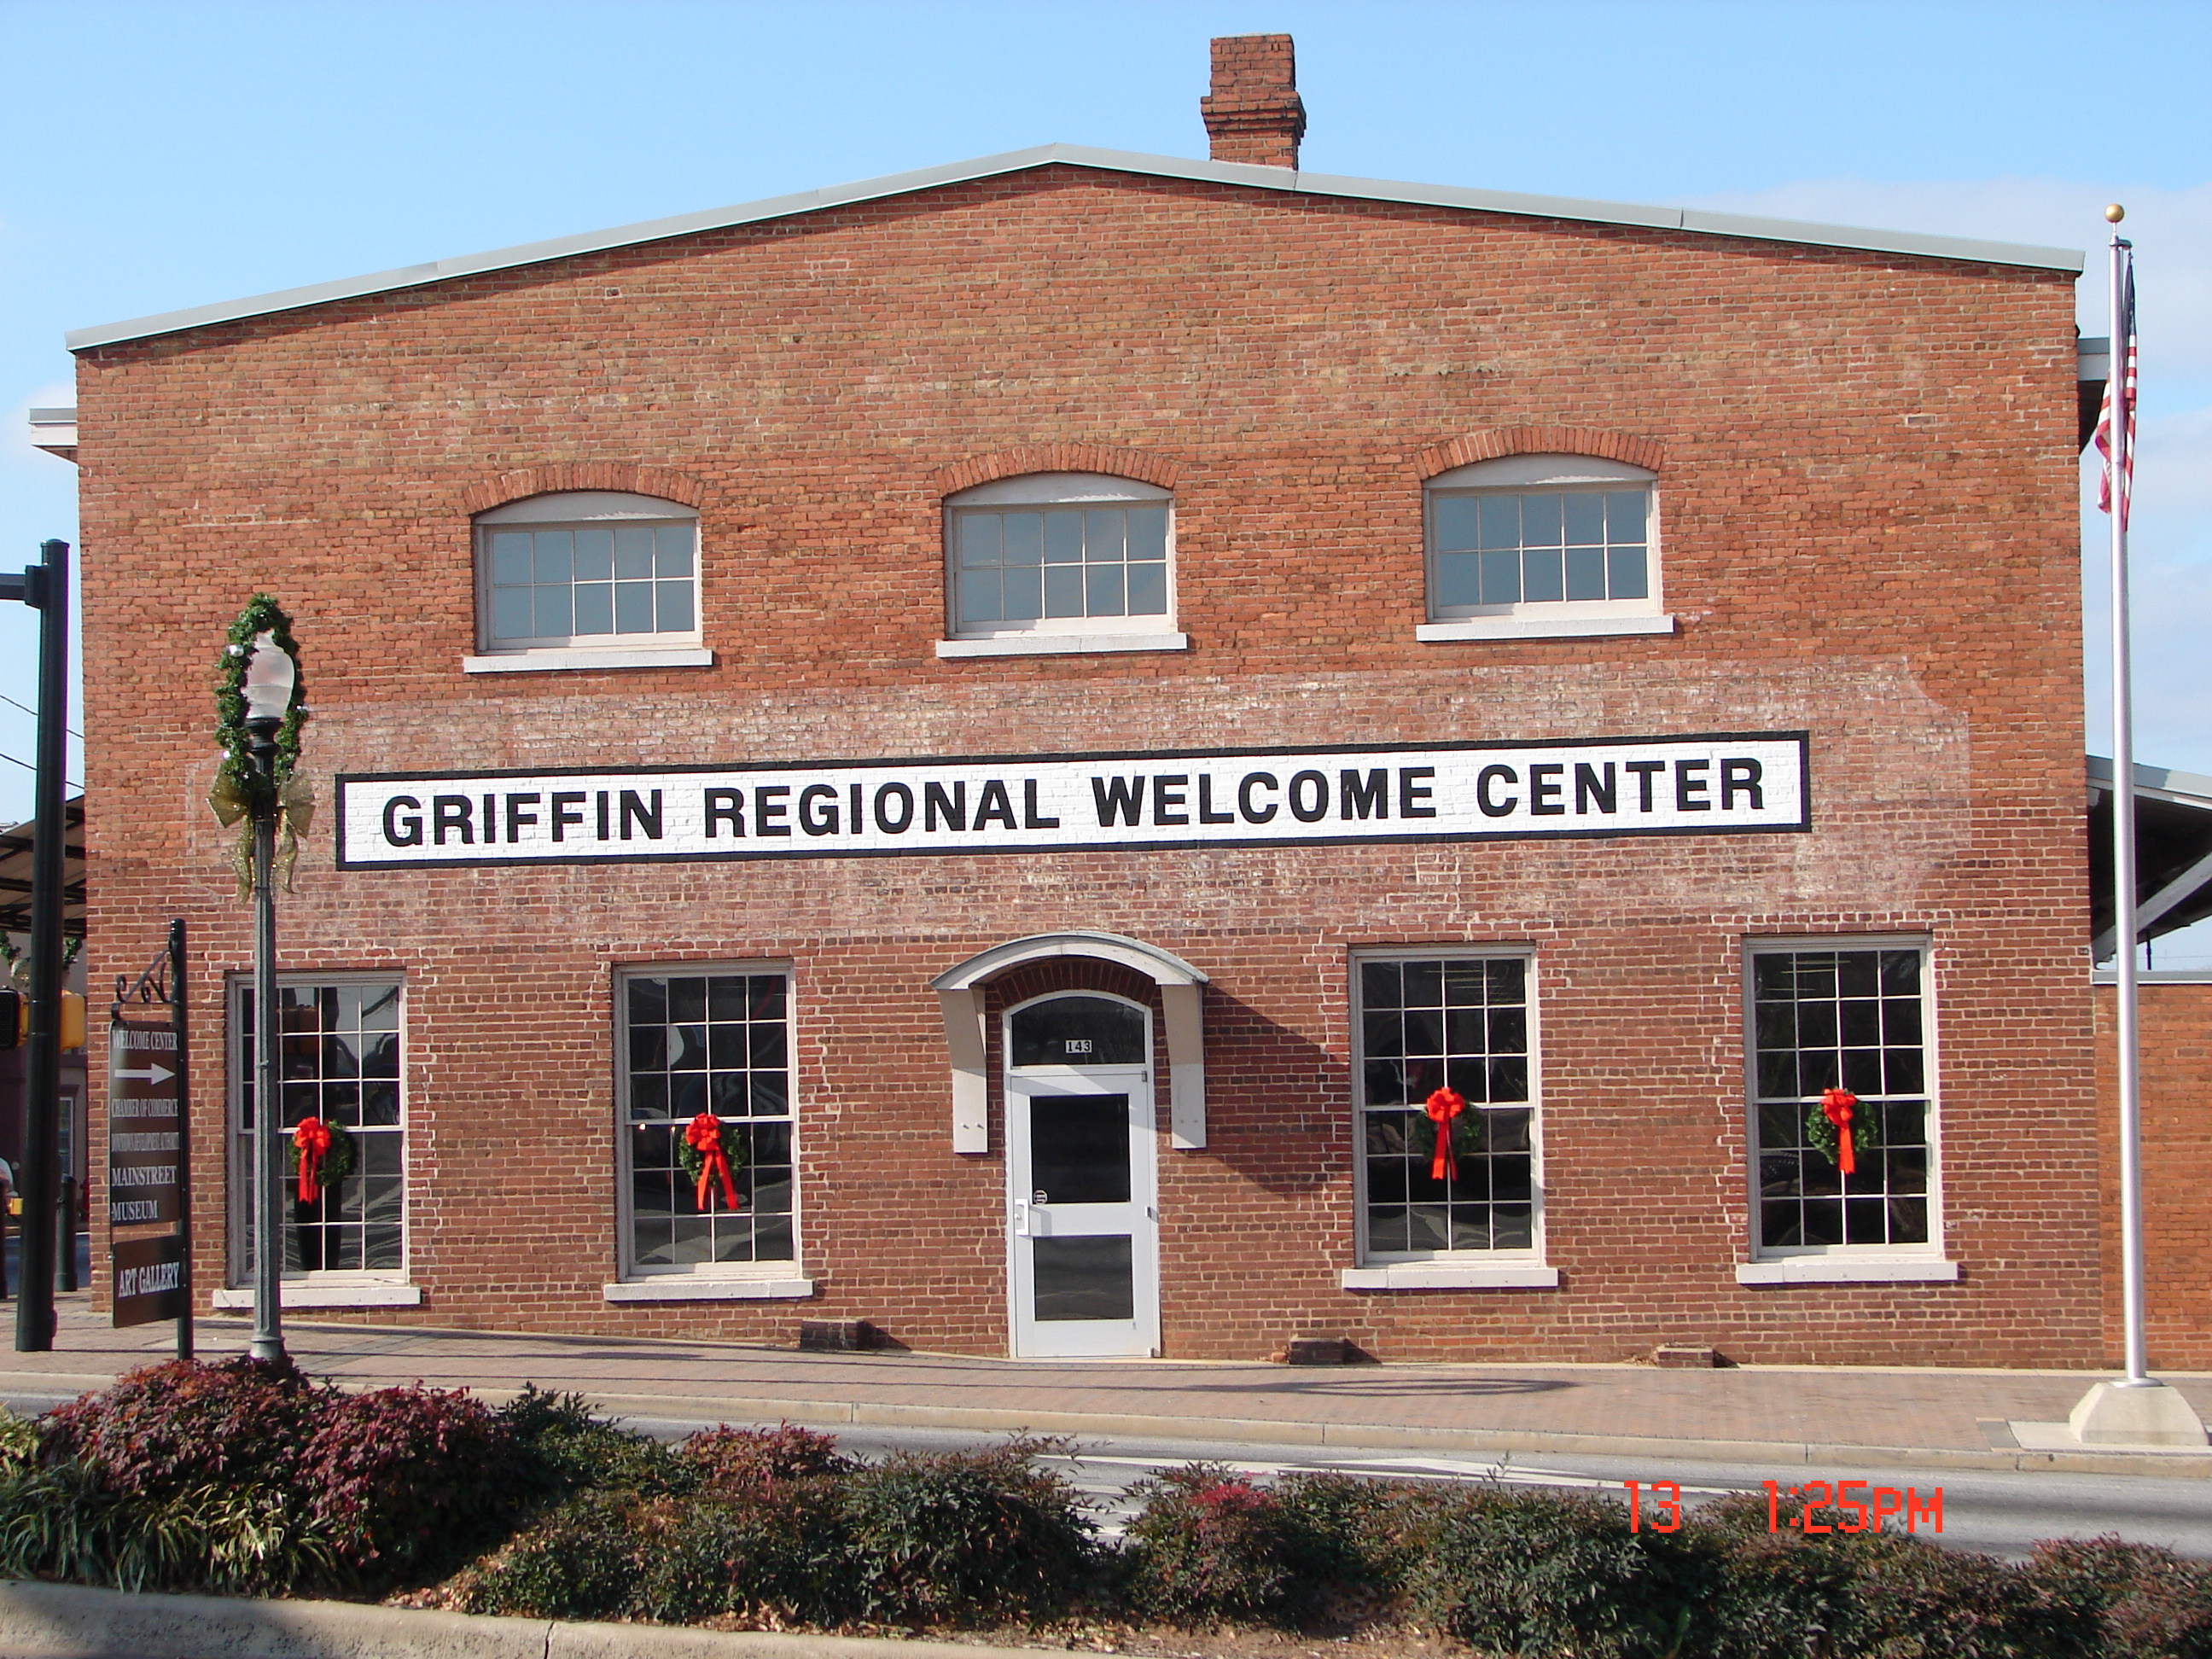 Griffin Regional Welcome Center | Official Georgia Tourism